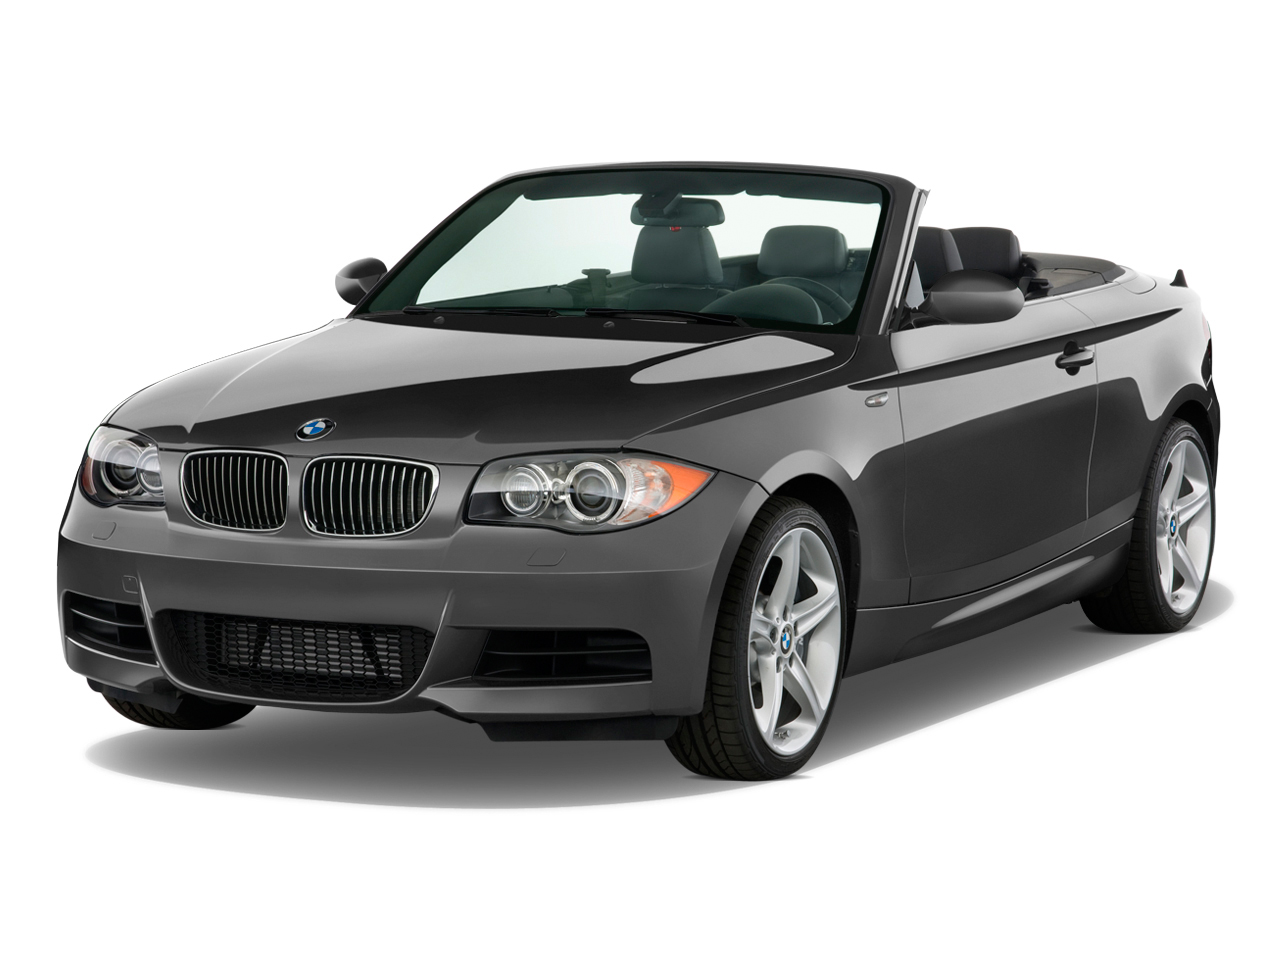 BMW 1 series 135is 2011 photo - 1